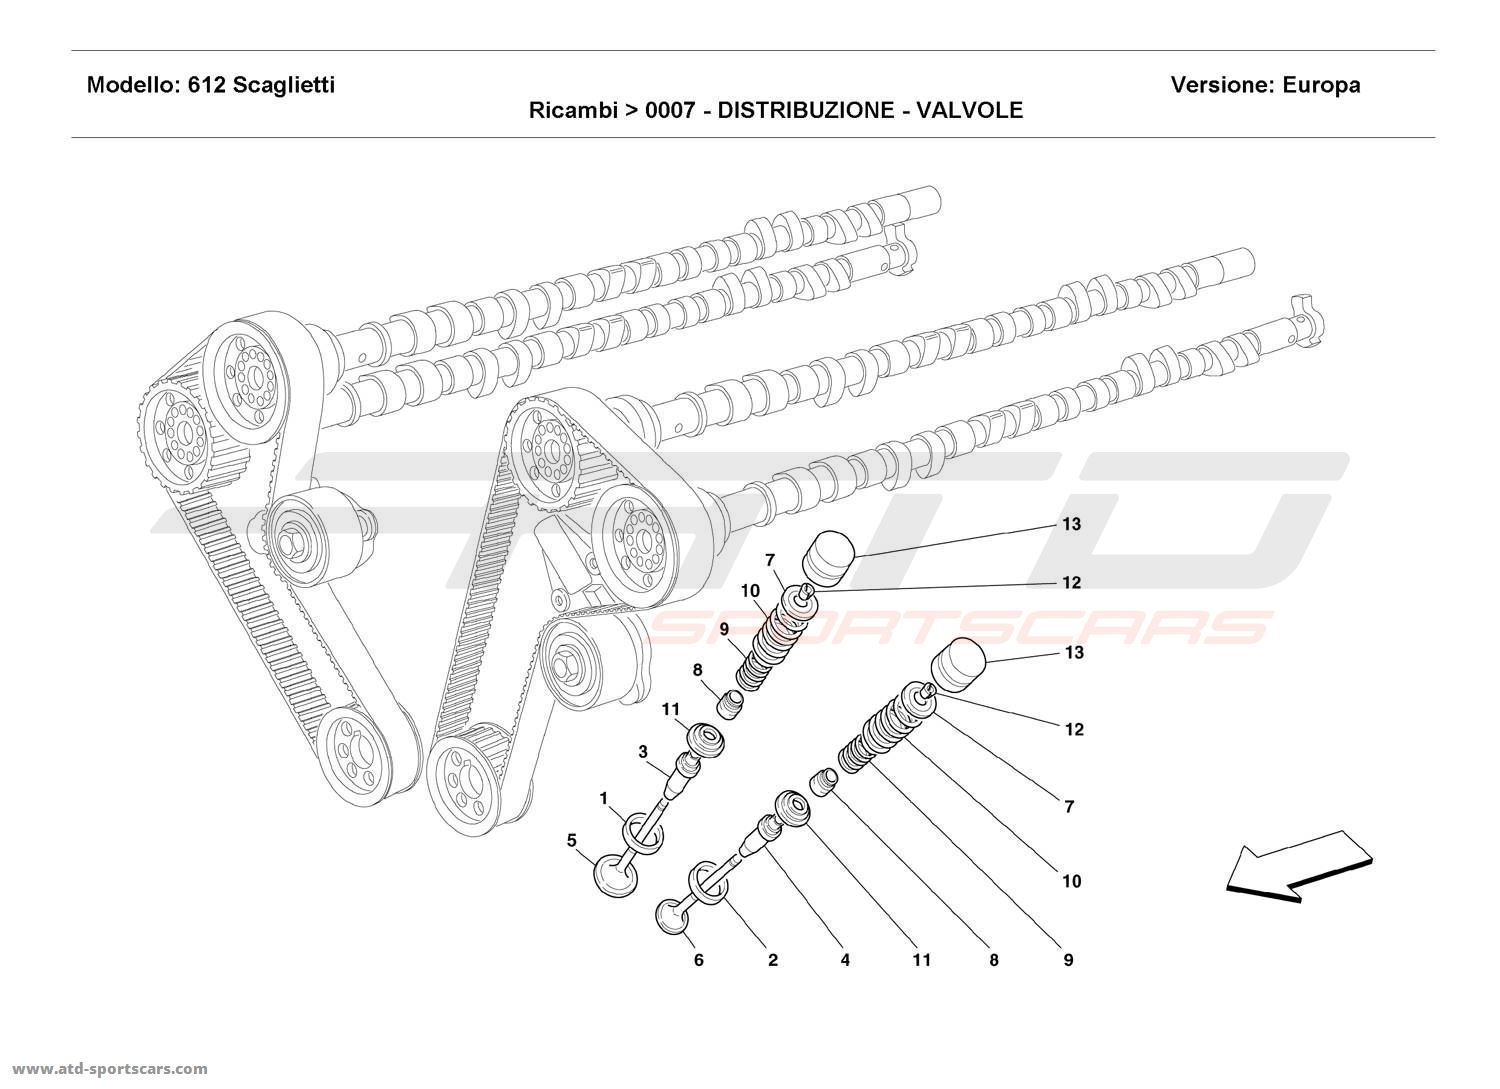 Ferrari 612 Scaglietti Engine Parts At Atd Sportscars